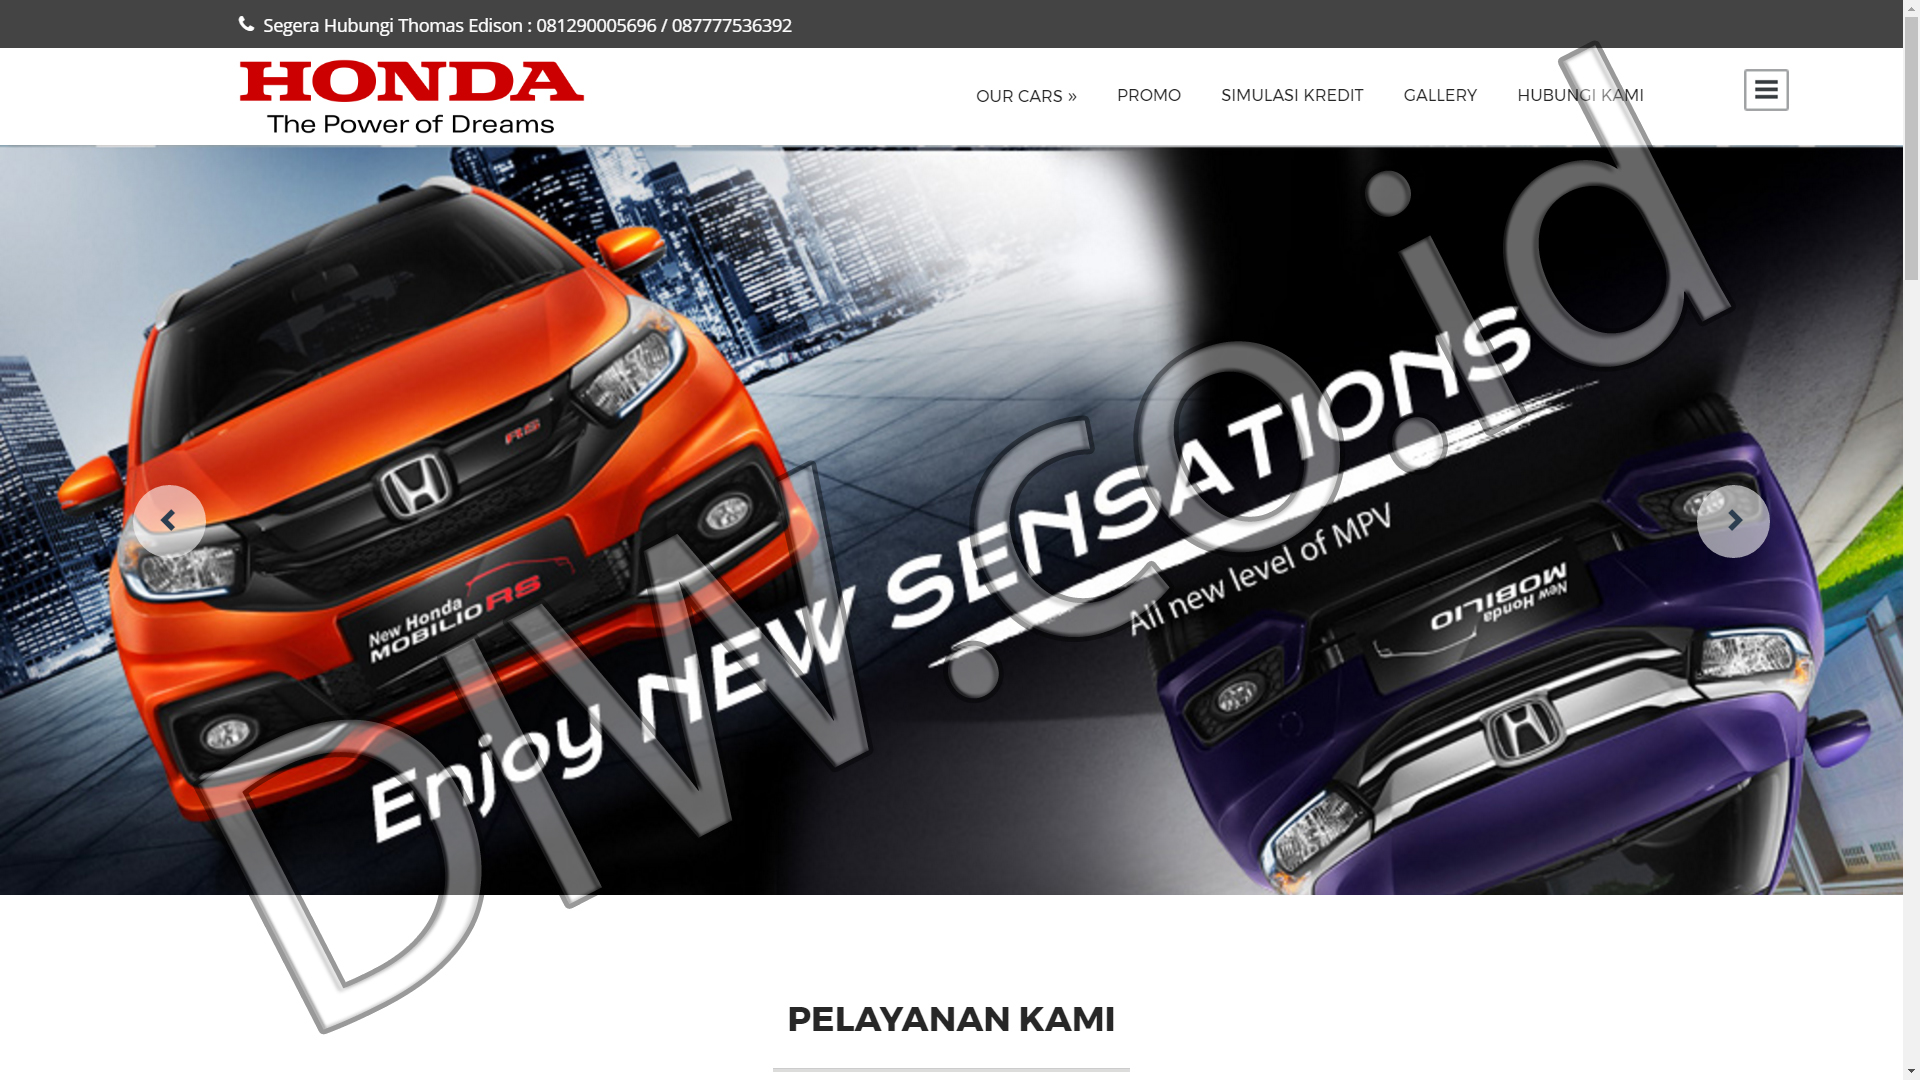 Portfolio 1 - Promo Honda Mobil - Andri Sunardi - Freelancer - Web Developer - CEO DIW.co.id